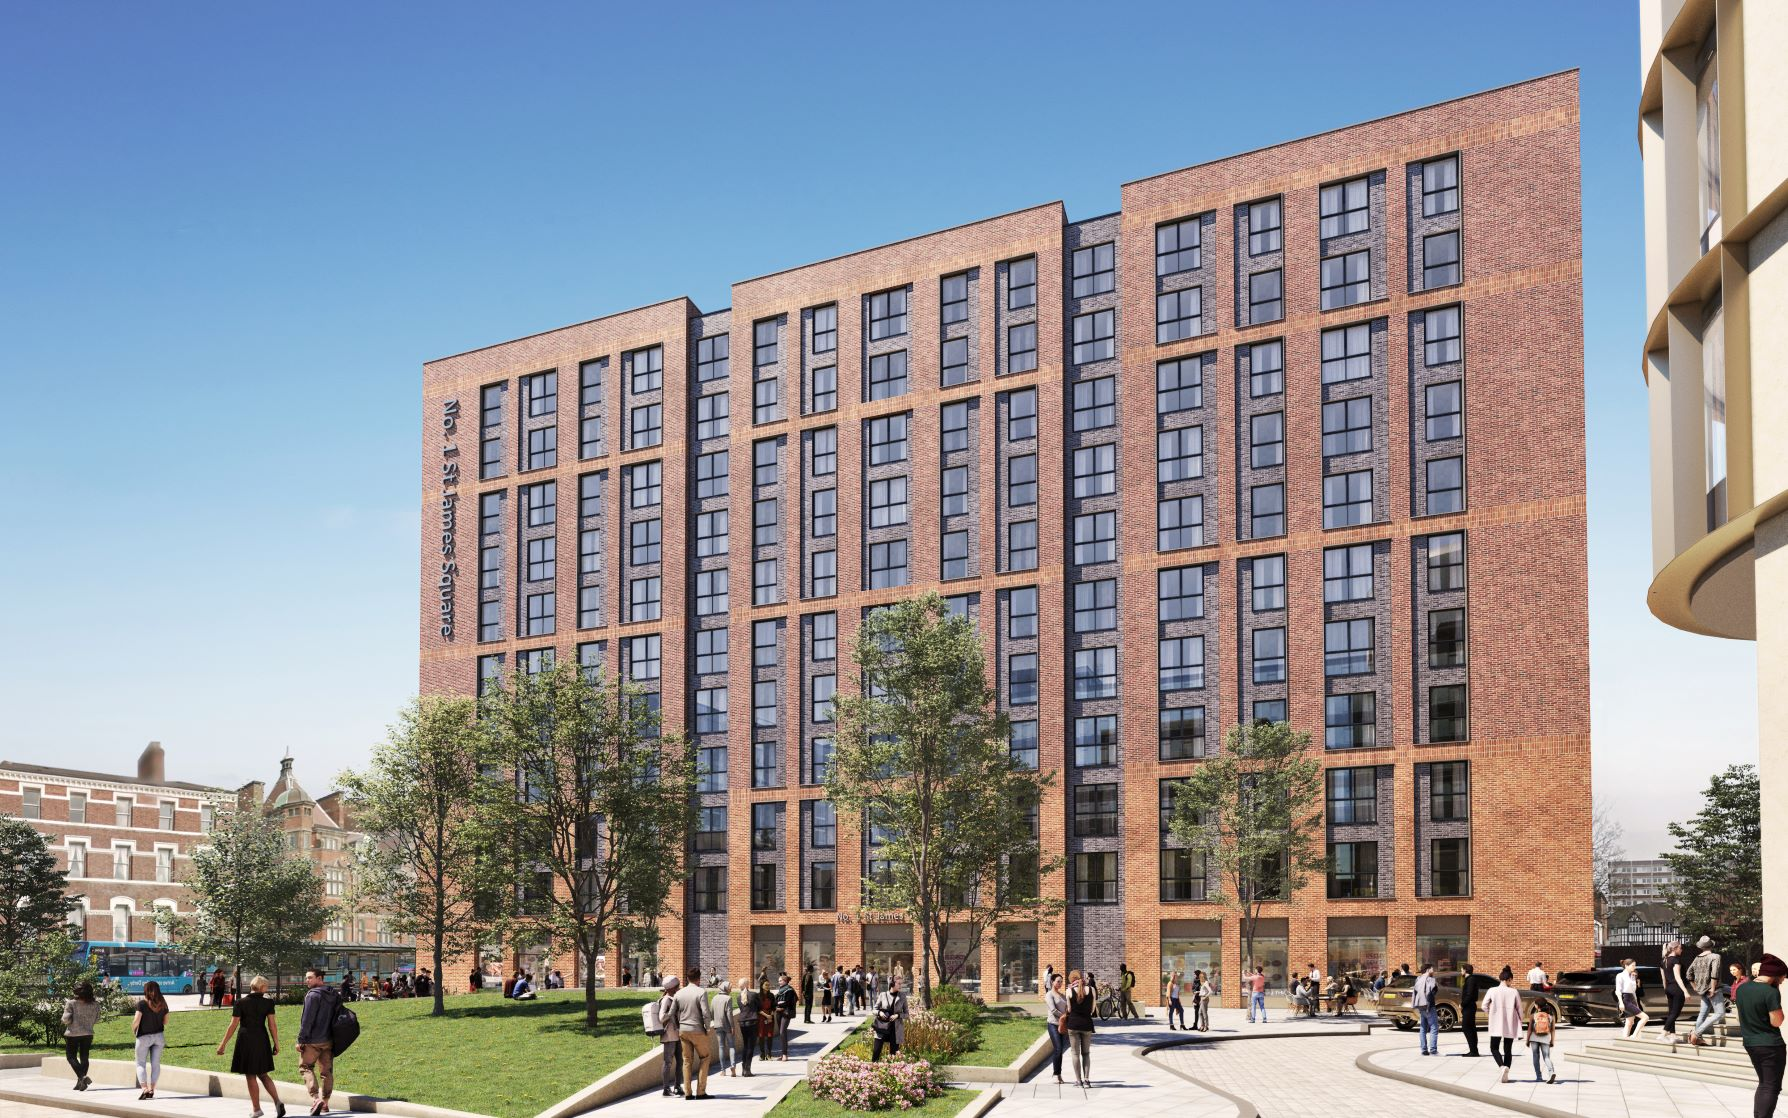 GRAINGER PLC TO FORWARD FUND AND OPERATE BTR ELEMENT OF THE £200M BECKETWELL SCHEME IN DERBY